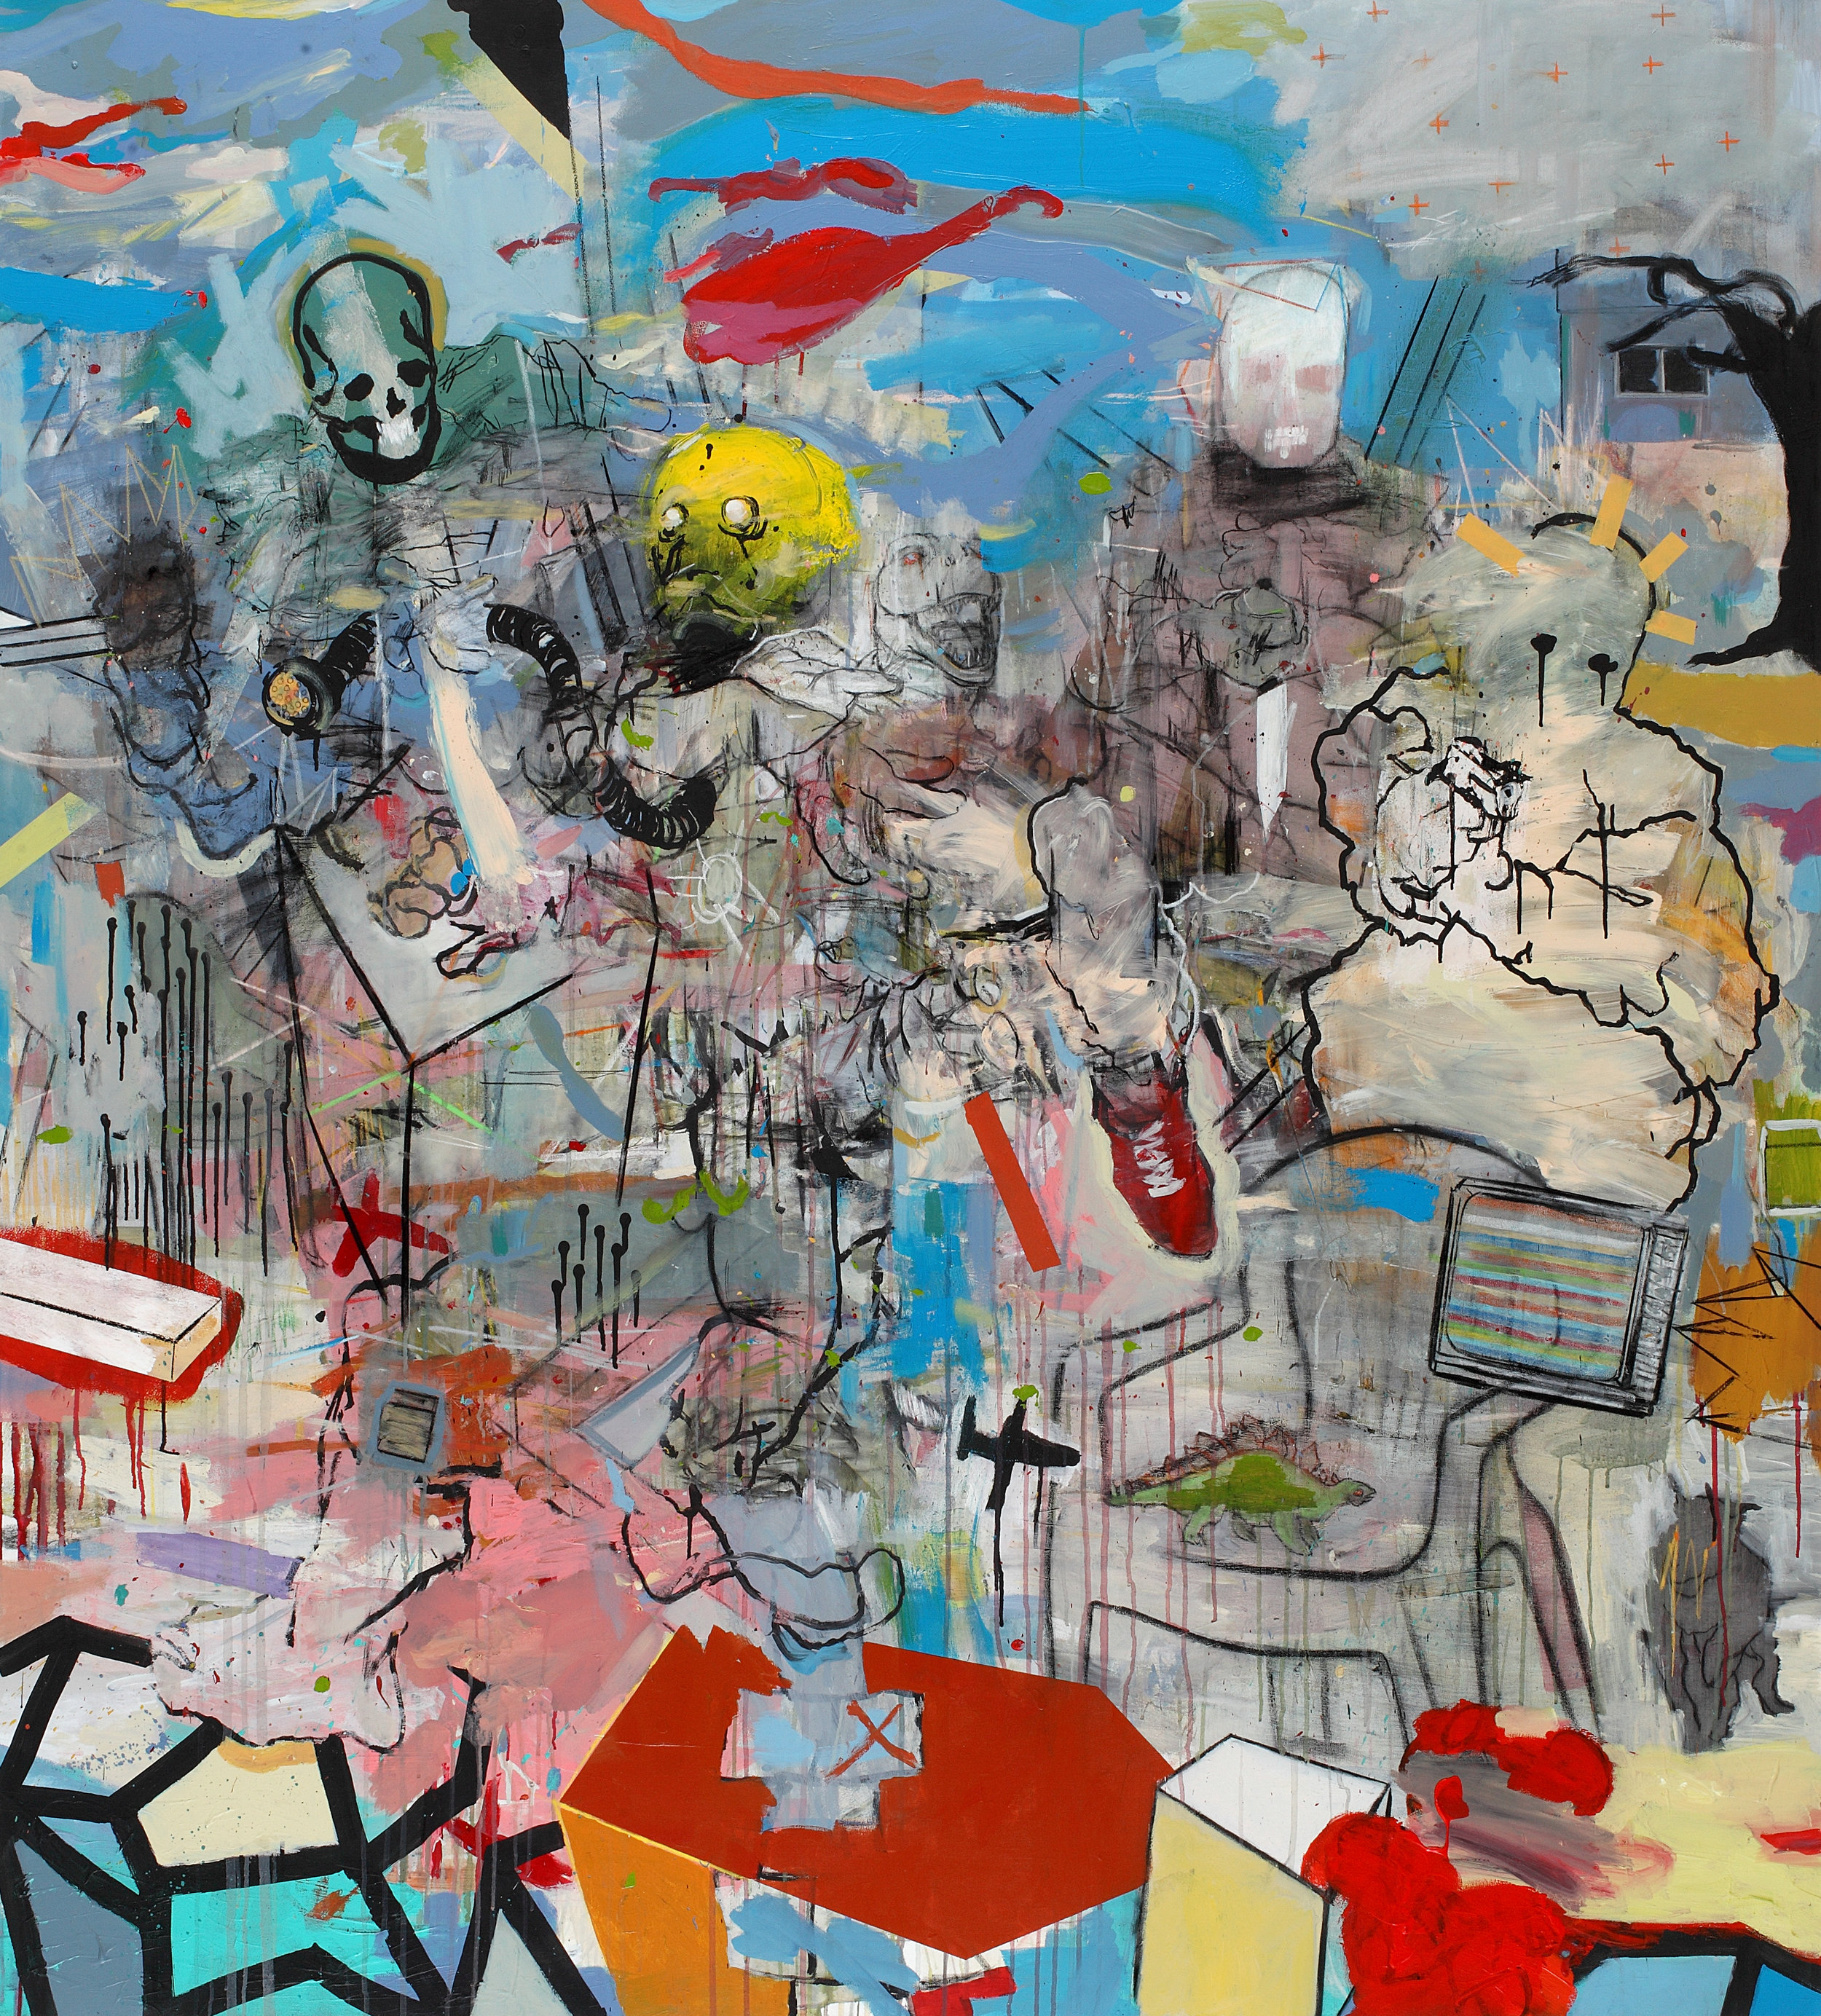 Thameur Mejri. Figures At War, 2017. Mixed media on canvas, 180 x 140cm. Image courtesy of the artist and El Marsa Gallery